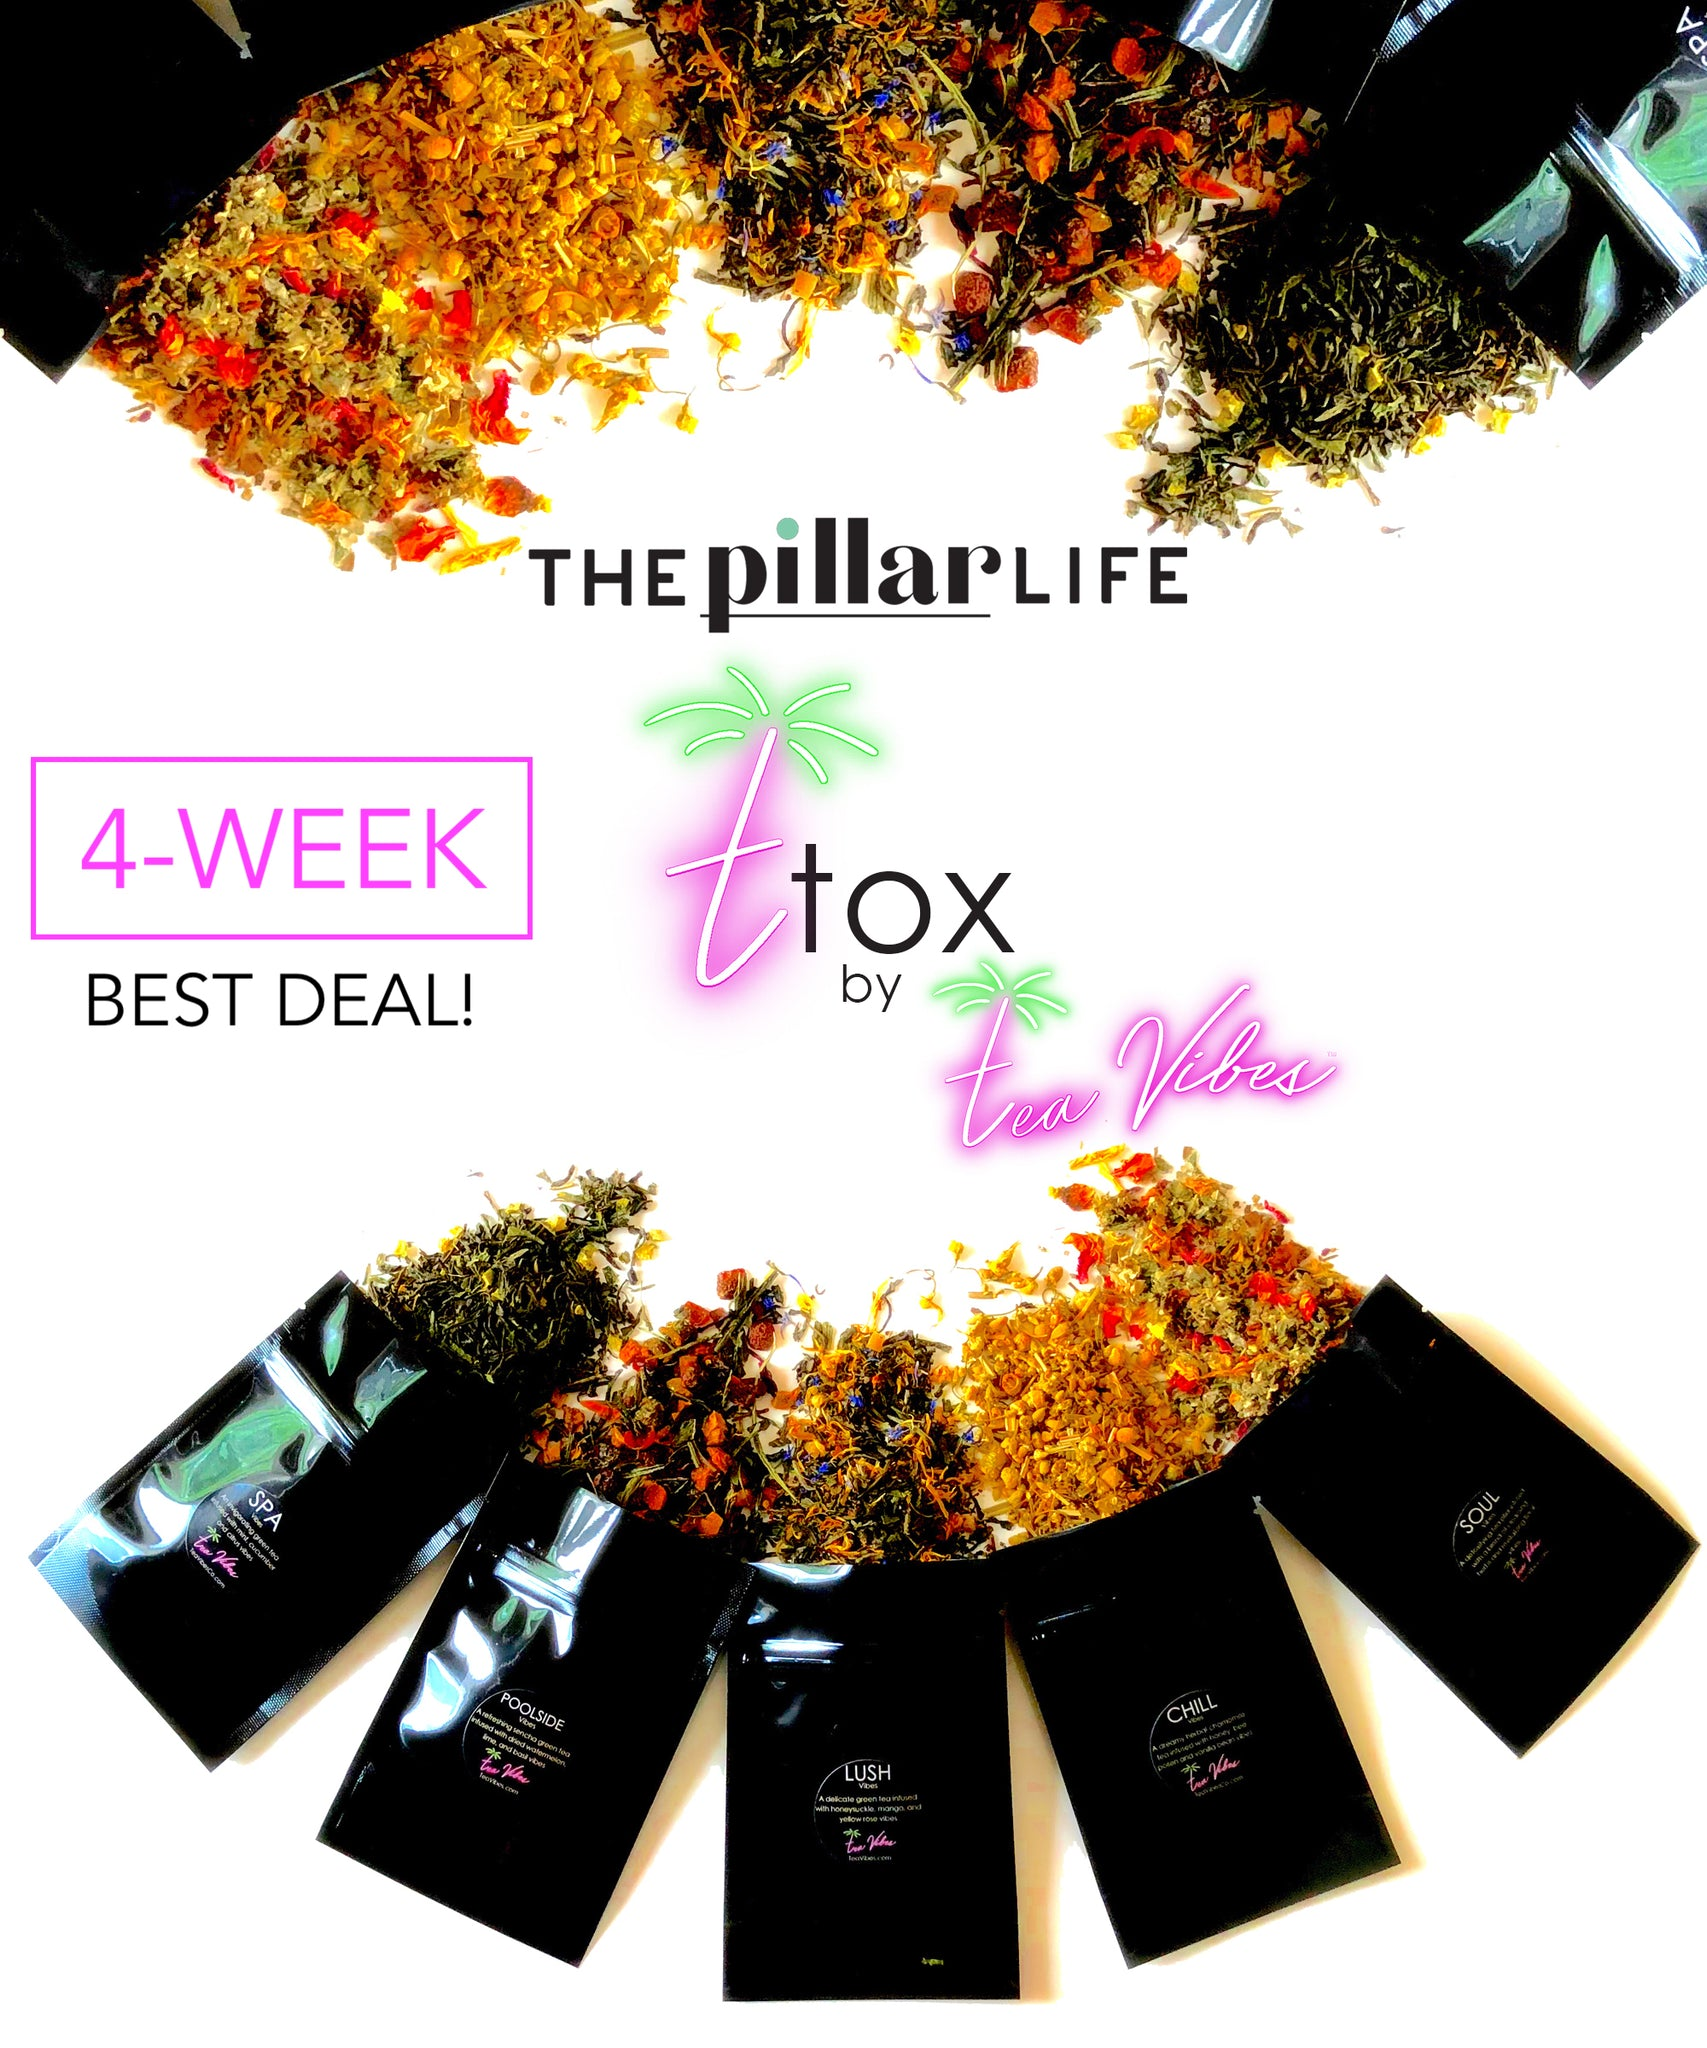 4-WEEK: THE PILLAR LIFE T-TOX by TEA VIBES (VALUE SIZE!)